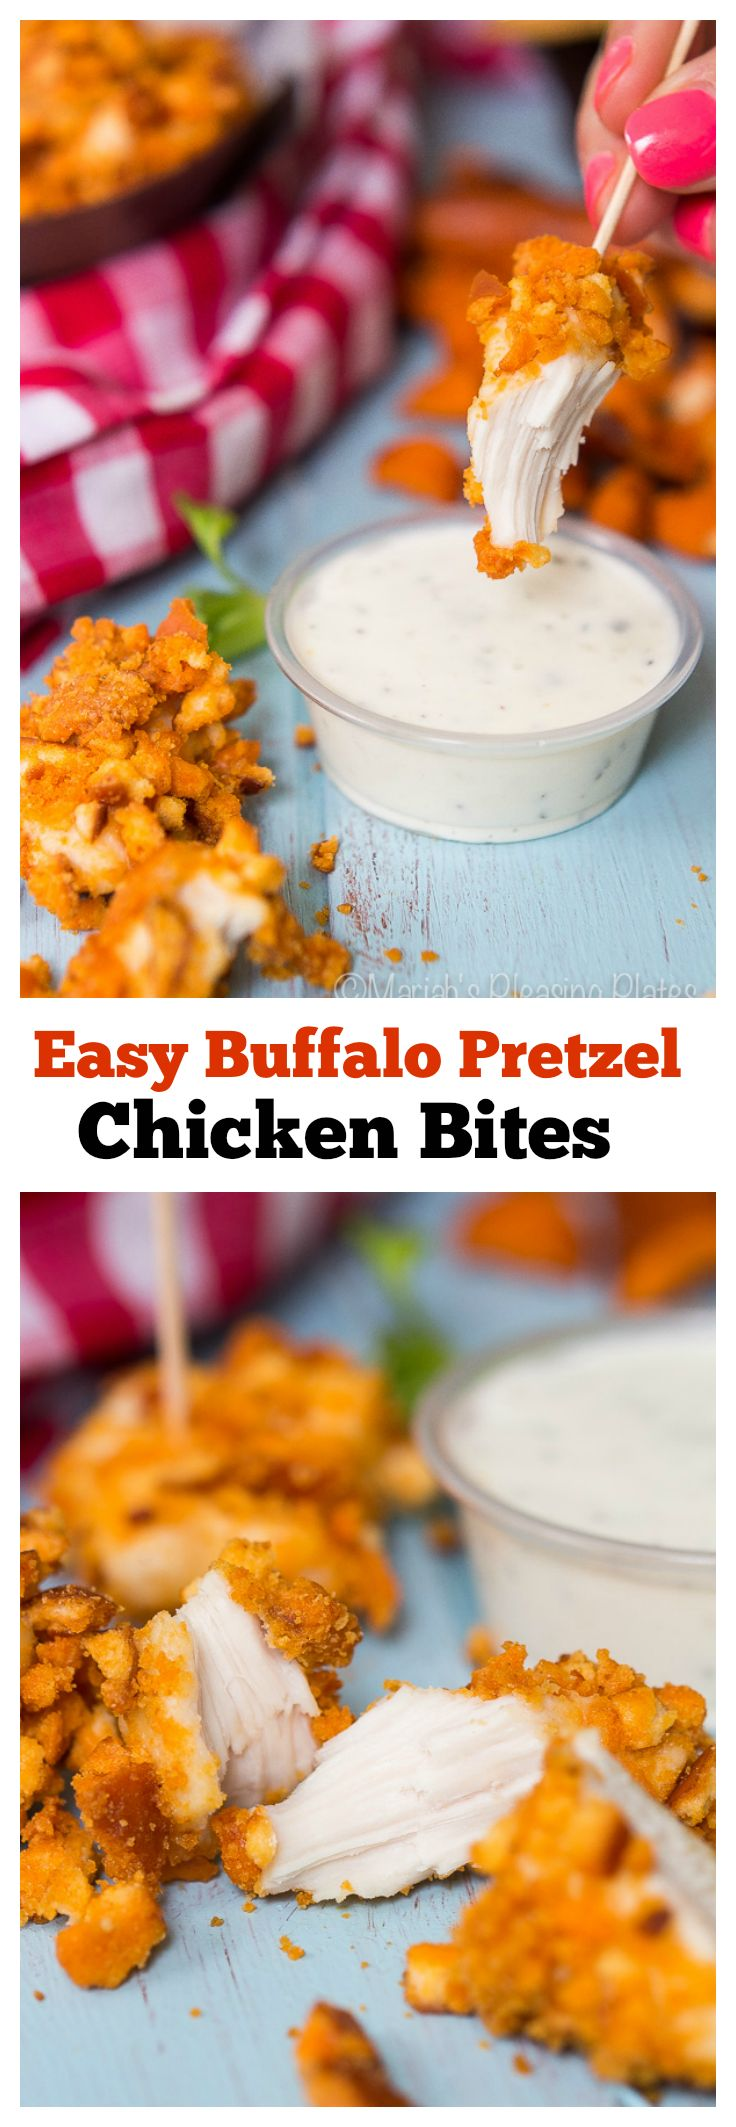 These Buffalo Pretzel Chicken Bites are the perfect snack and are great for on the go entertaining! Made with sourdough buffalo pretzel bites and all white chicken breast, these little nuggets are perfect for dipping, dunking or sharing! #ad #summertogo